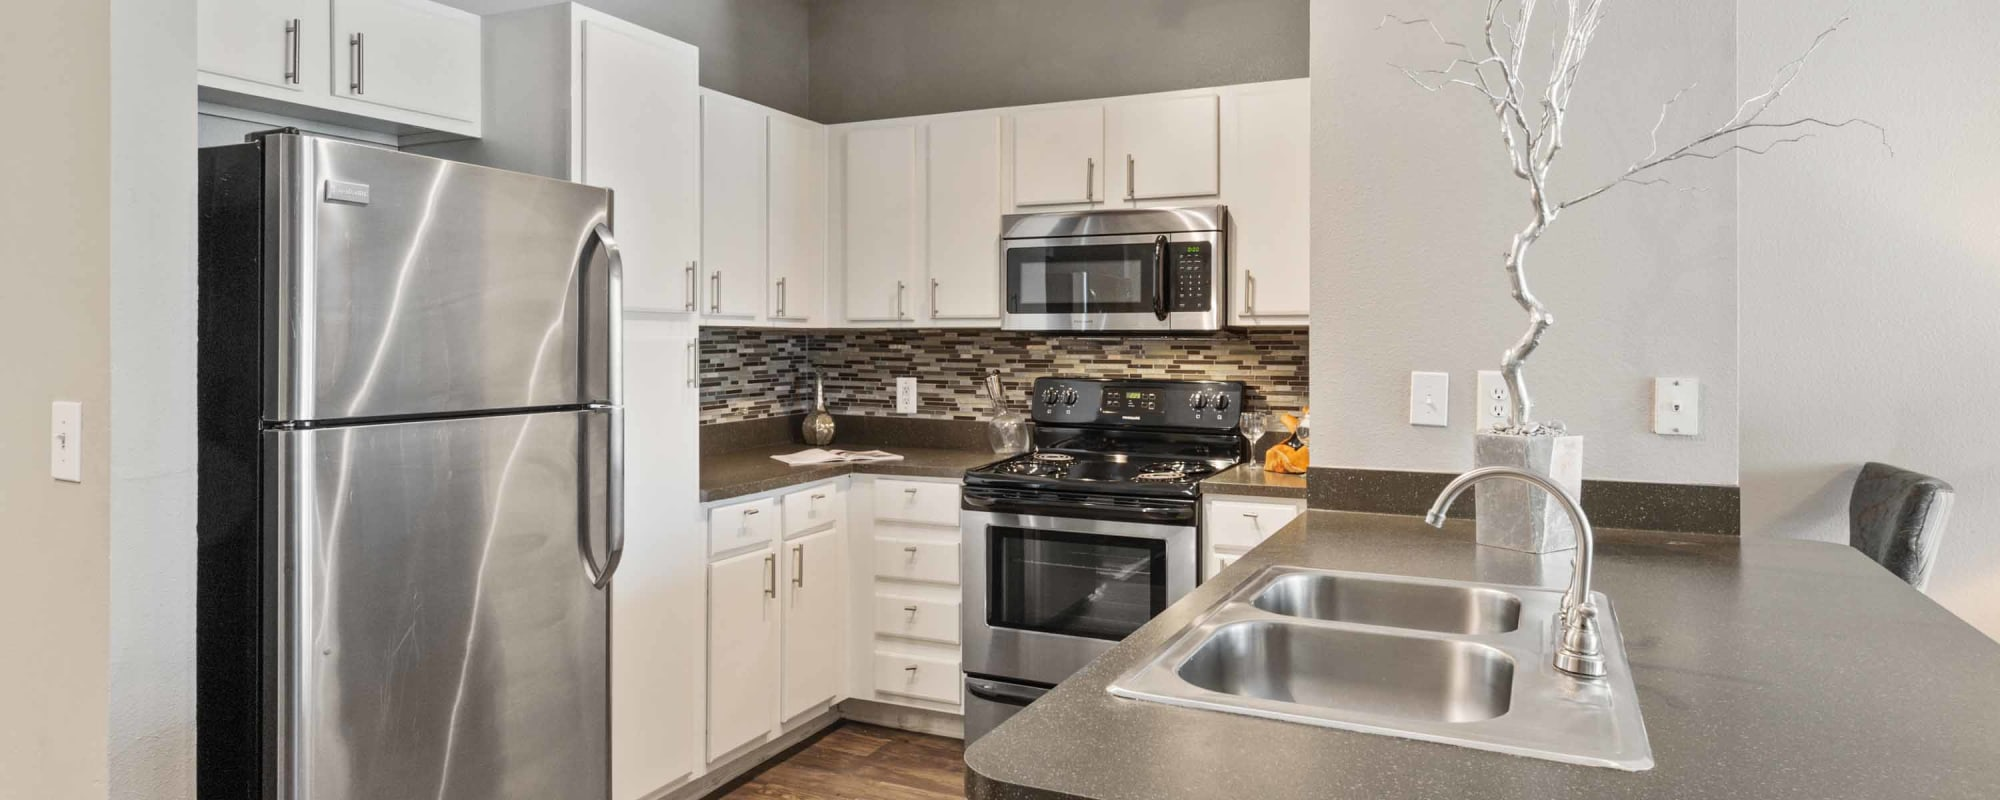 Kitchen with stainless appliances at Archer Stone Canyon